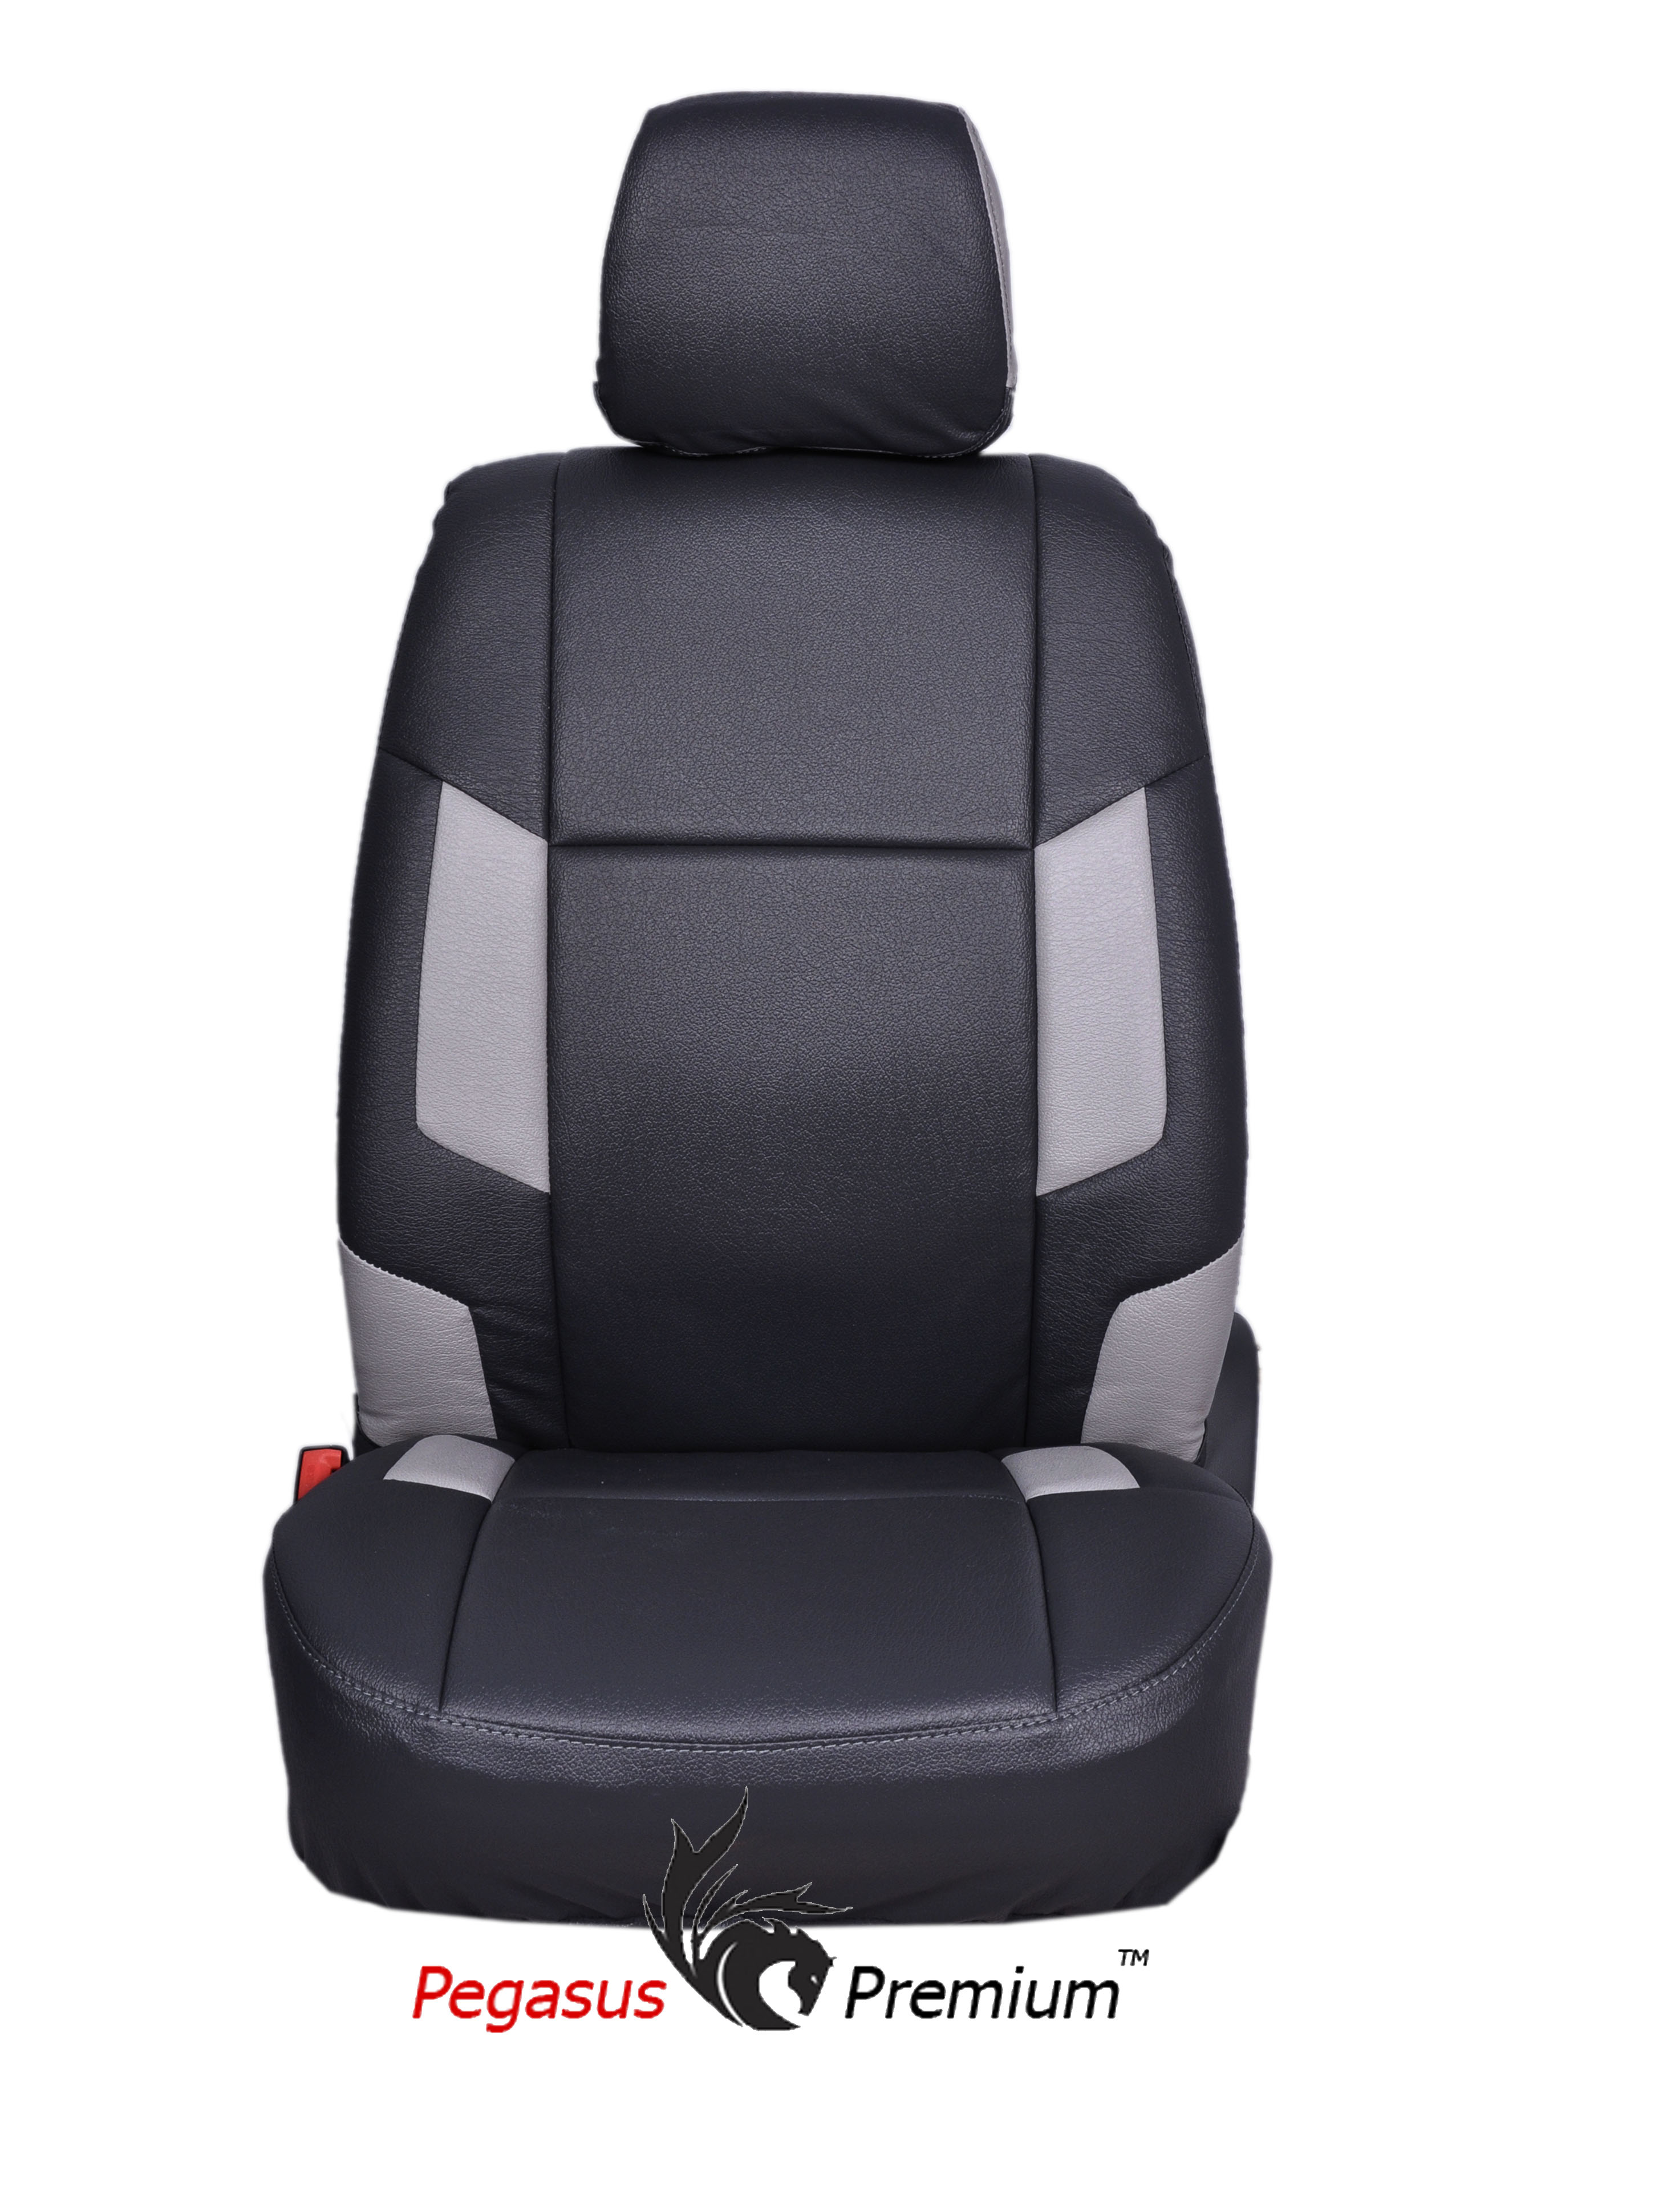 maruti car seat cover leatherite pegasus premium alto ritz a star new wagon r swift online at. Black Bedroom Furniture Sets. Home Design Ideas